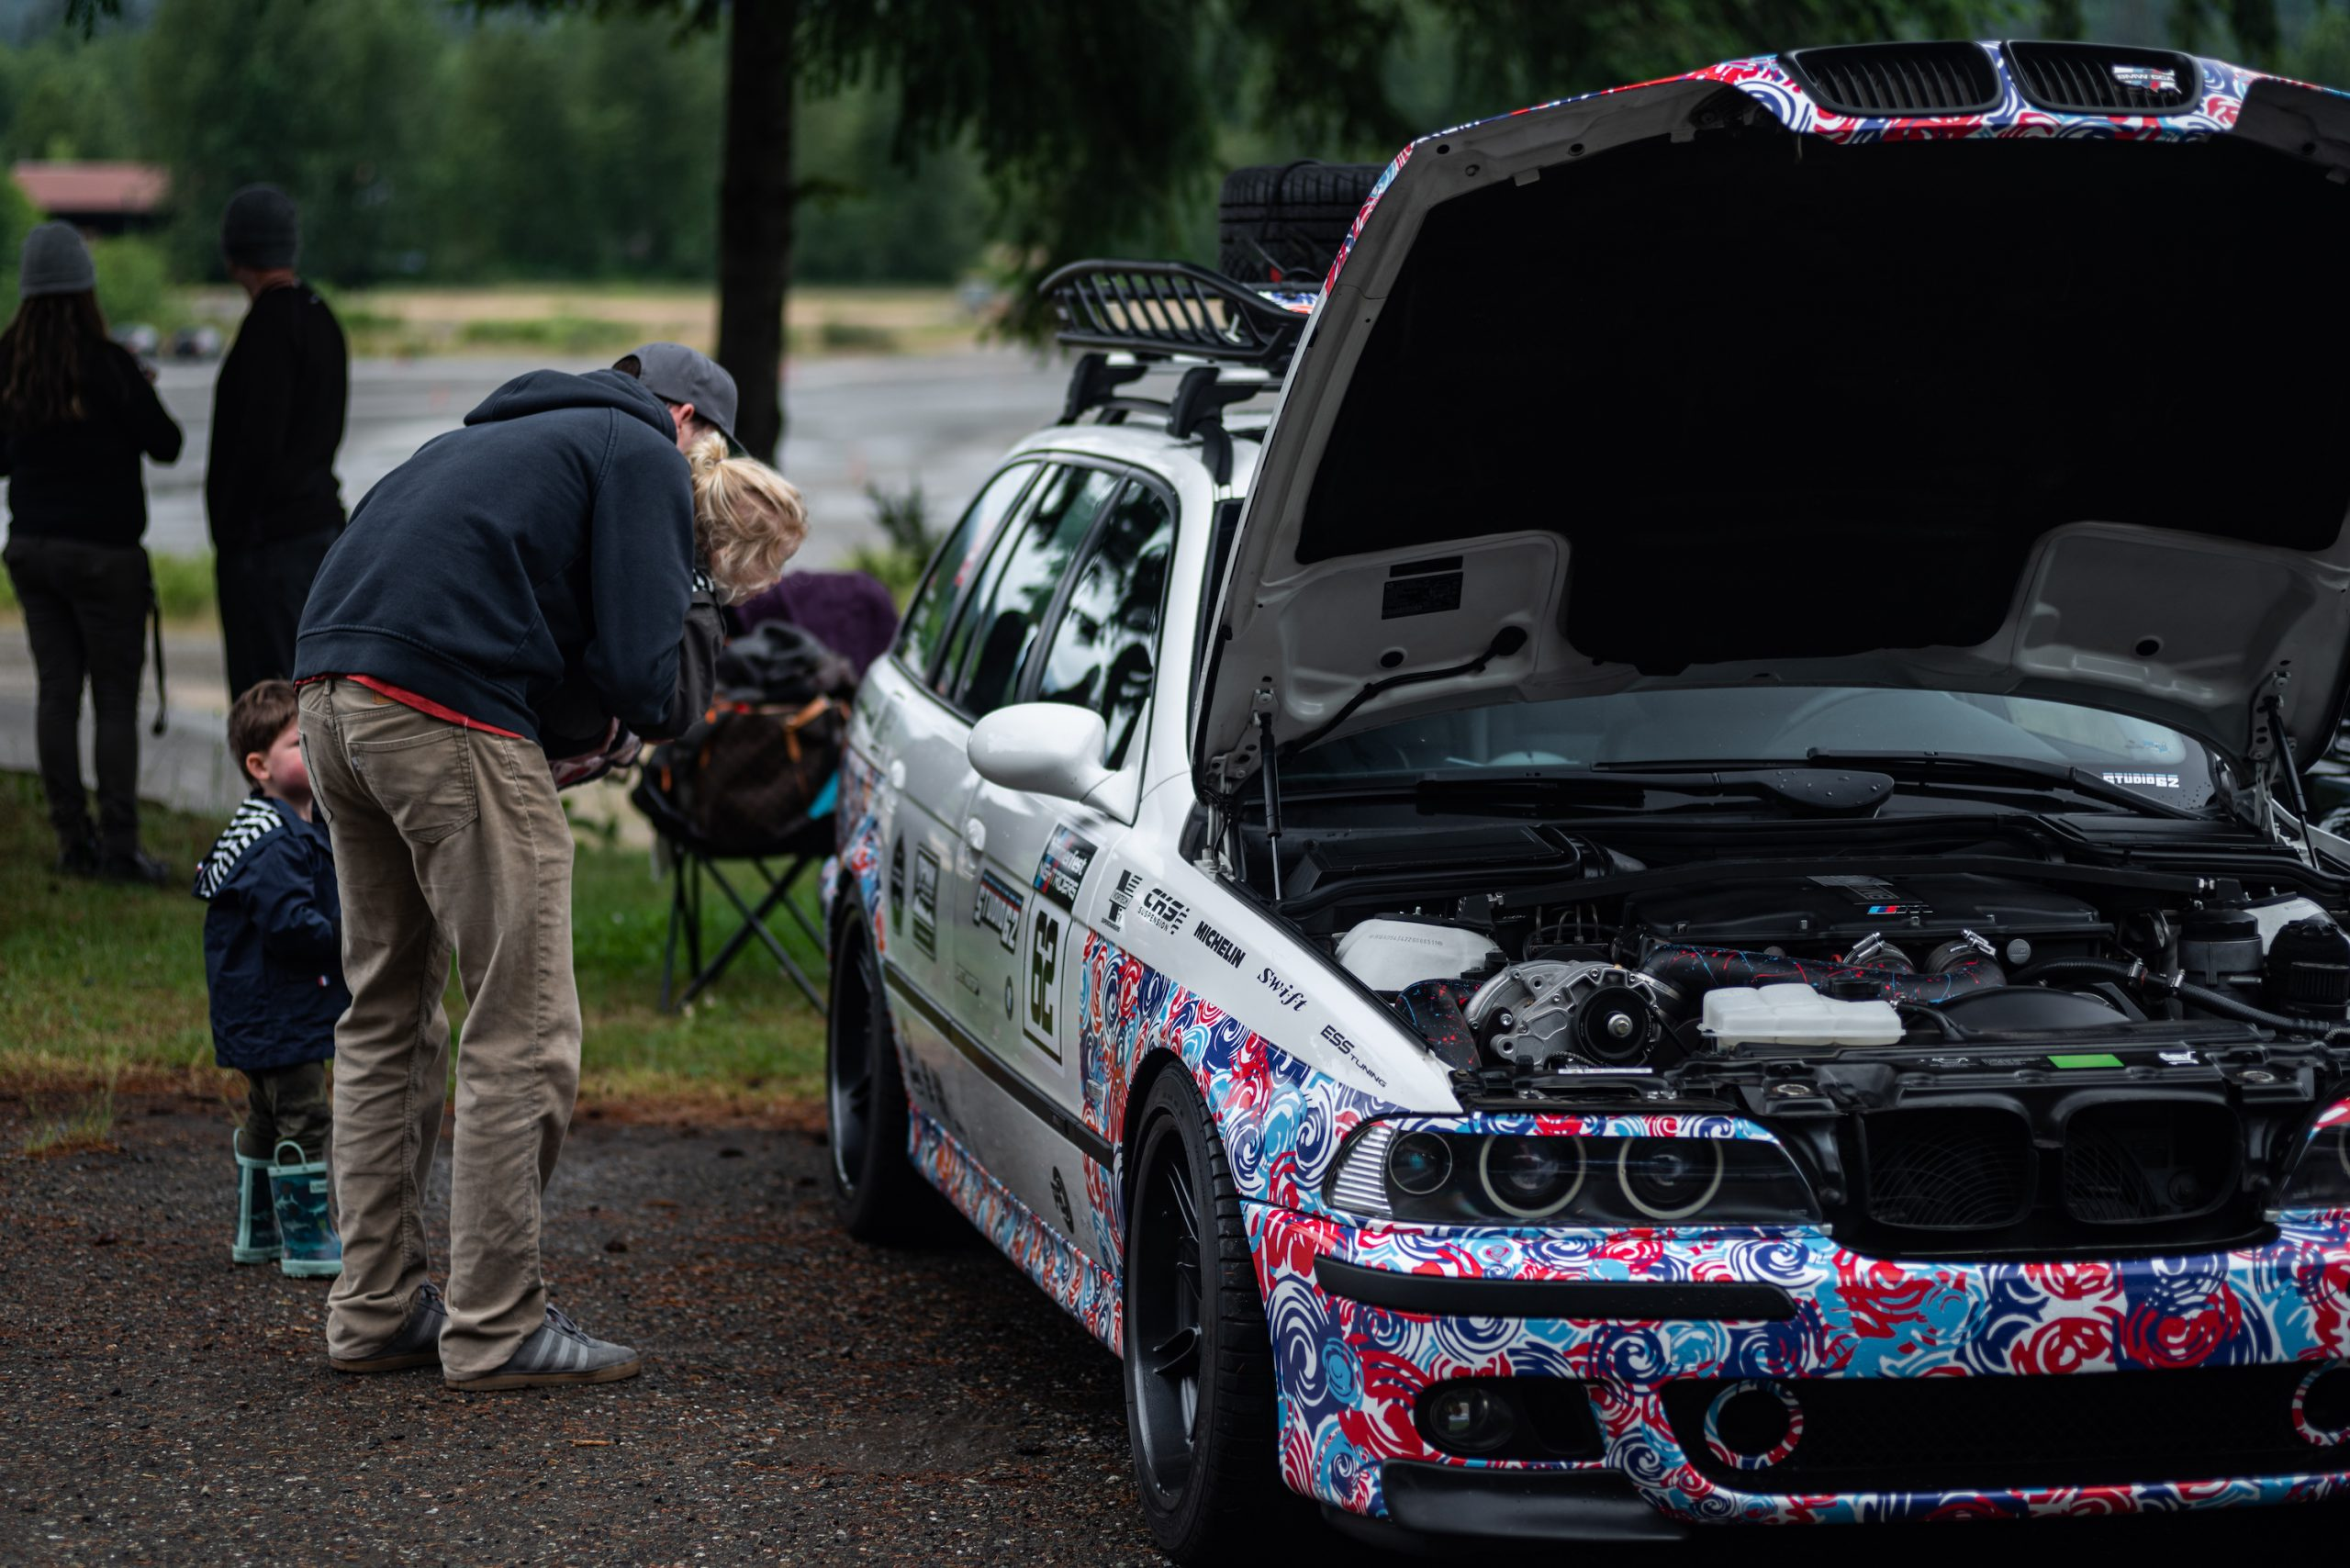 Man and Kids Checking Out Tuner BMW Wagon